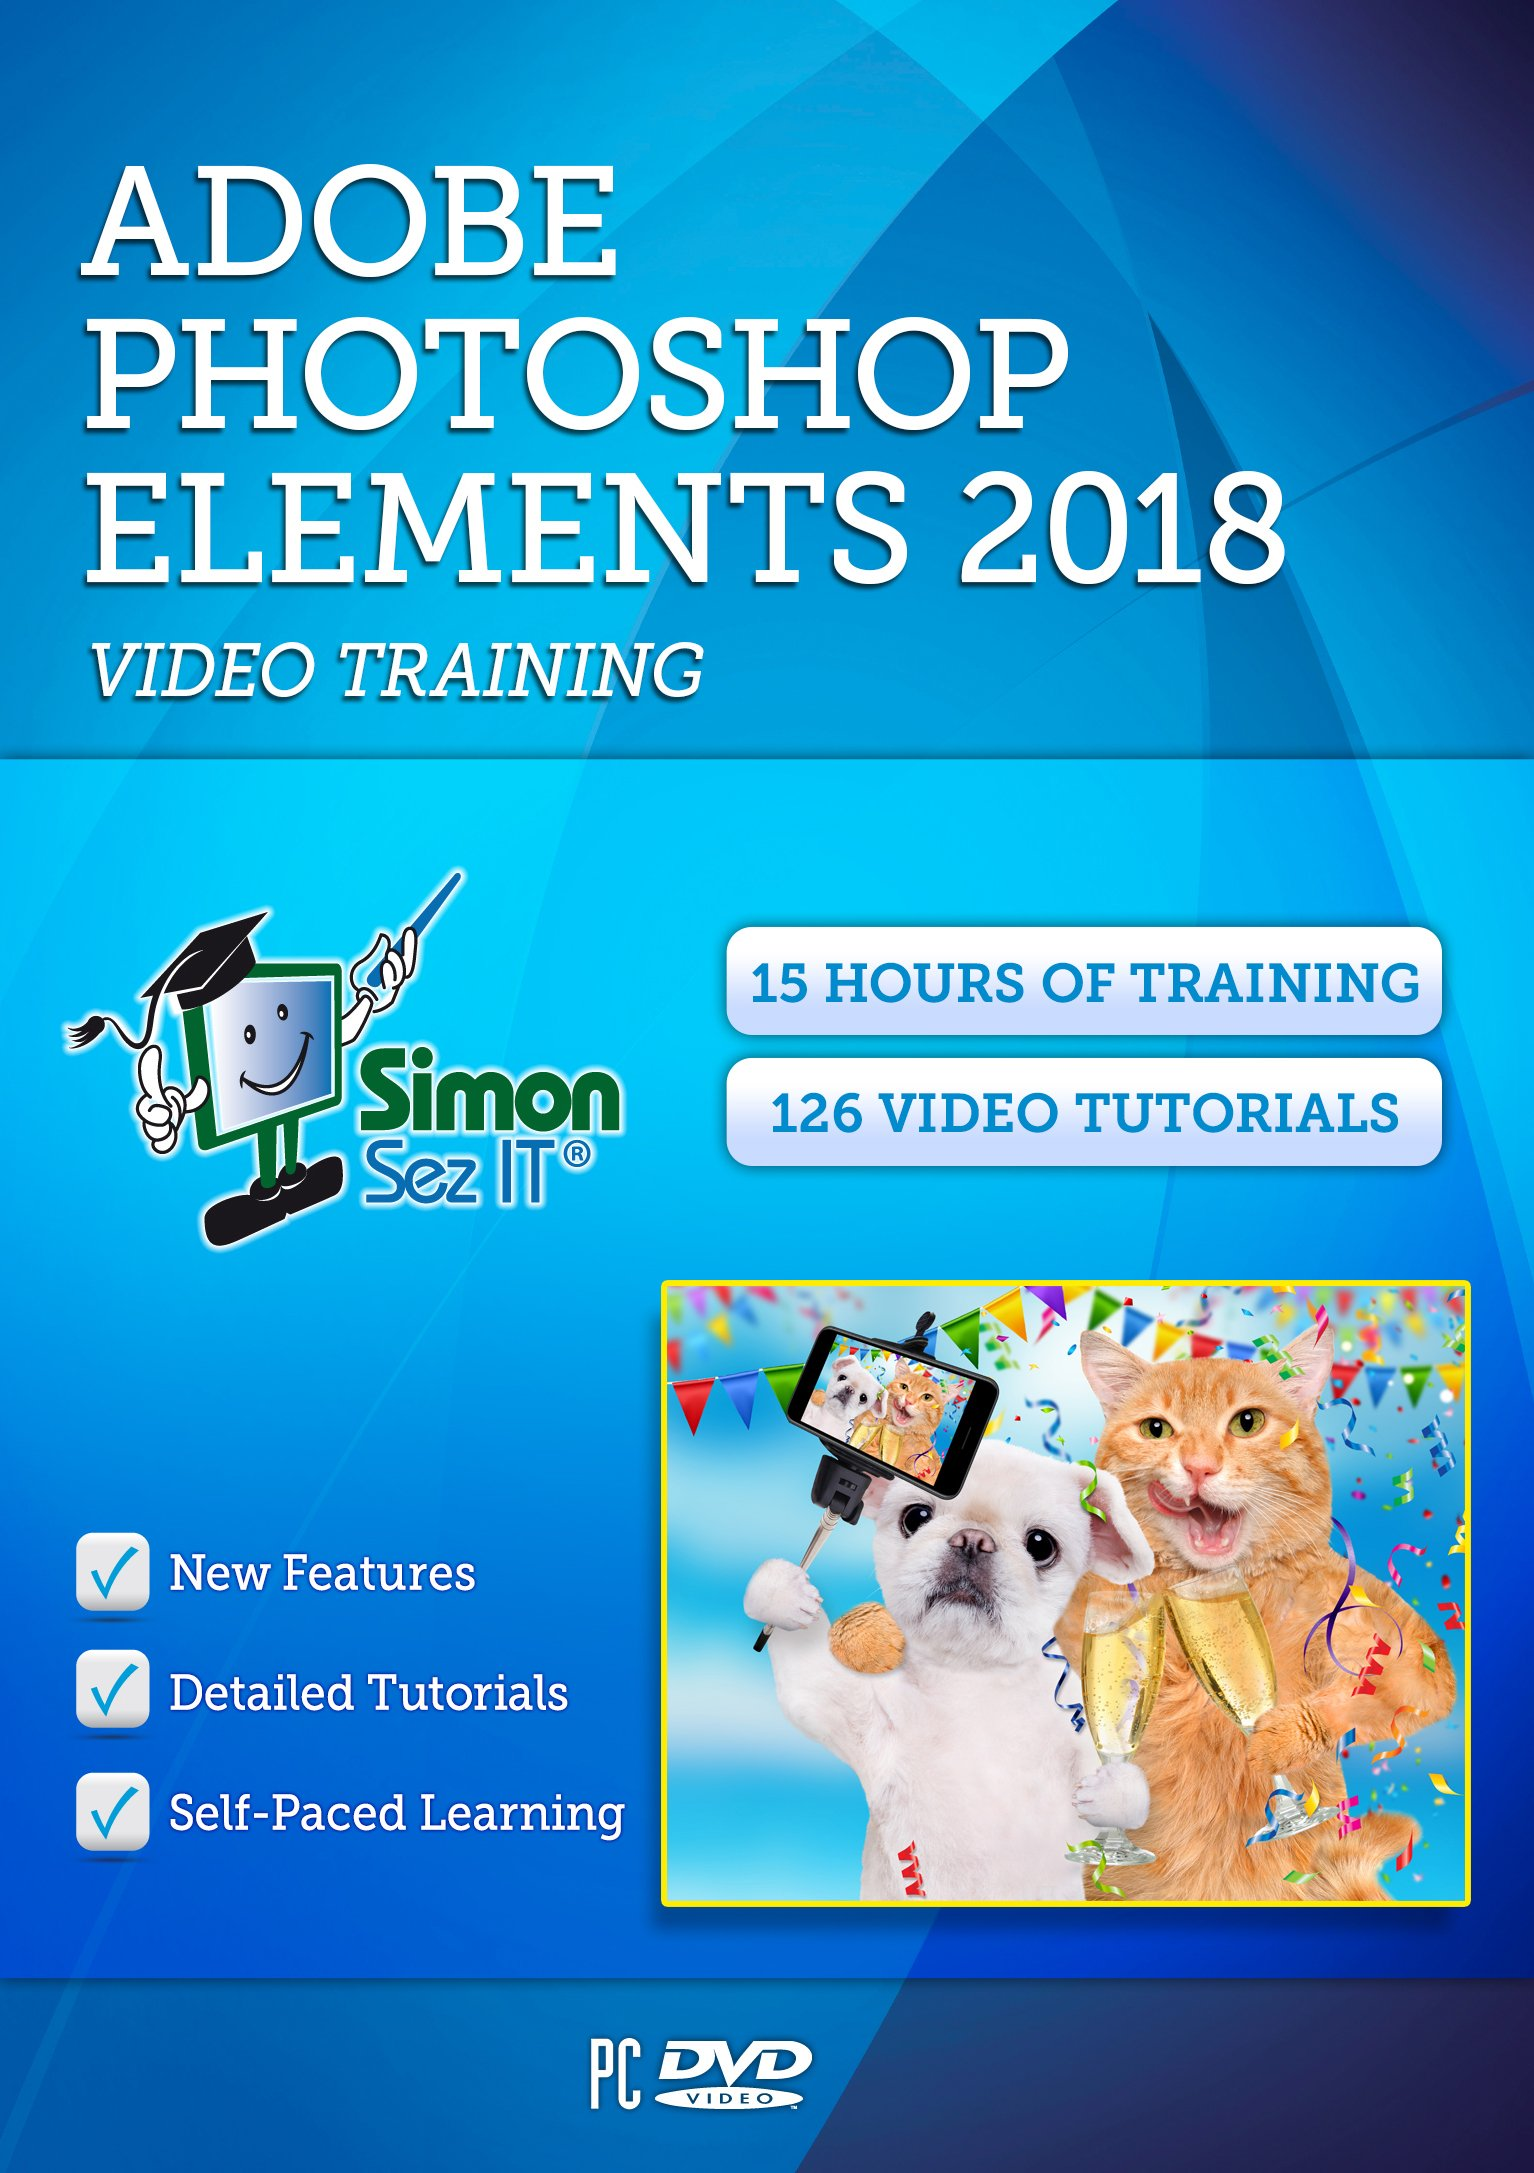 Photoshop Elements 2018 Self-Paced DVD Training Course By Simon Sez IT | Perfect Images & Pictures With A 15-Hour, Comprehensive & Easy To Follow Course by Simon Sez IT